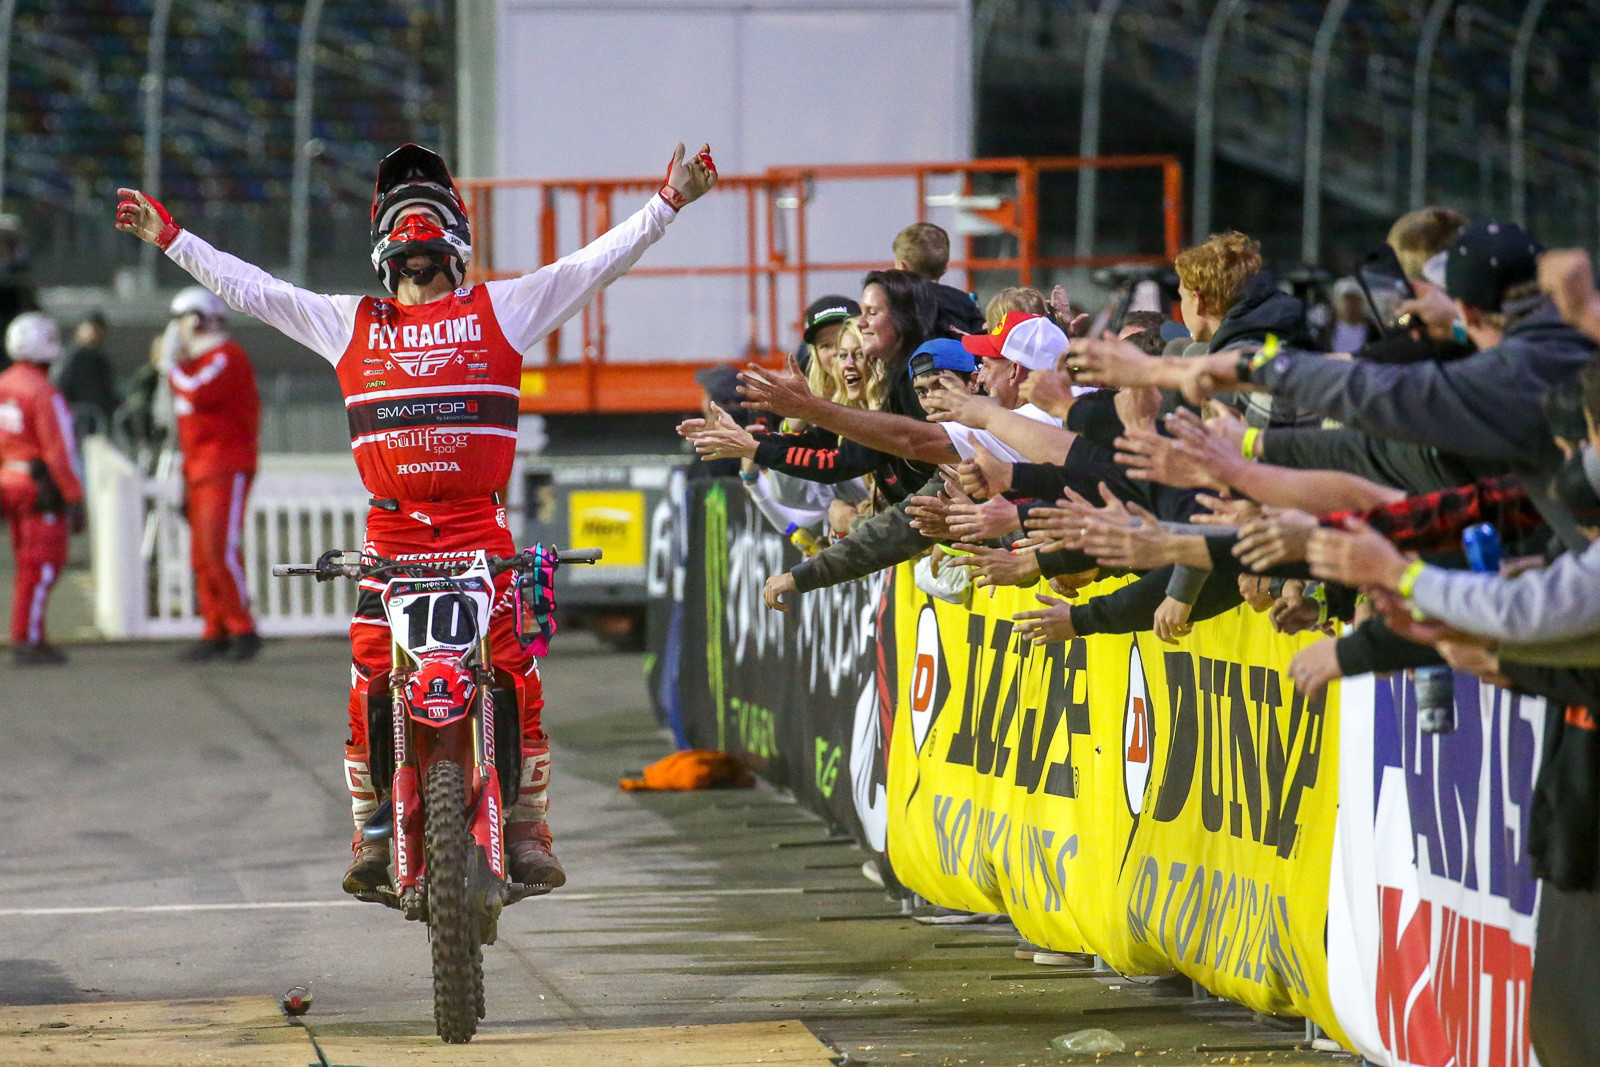 Justin Brayton was ecstatic after his Daytona win...and he also wrapped up another Australian SX title.